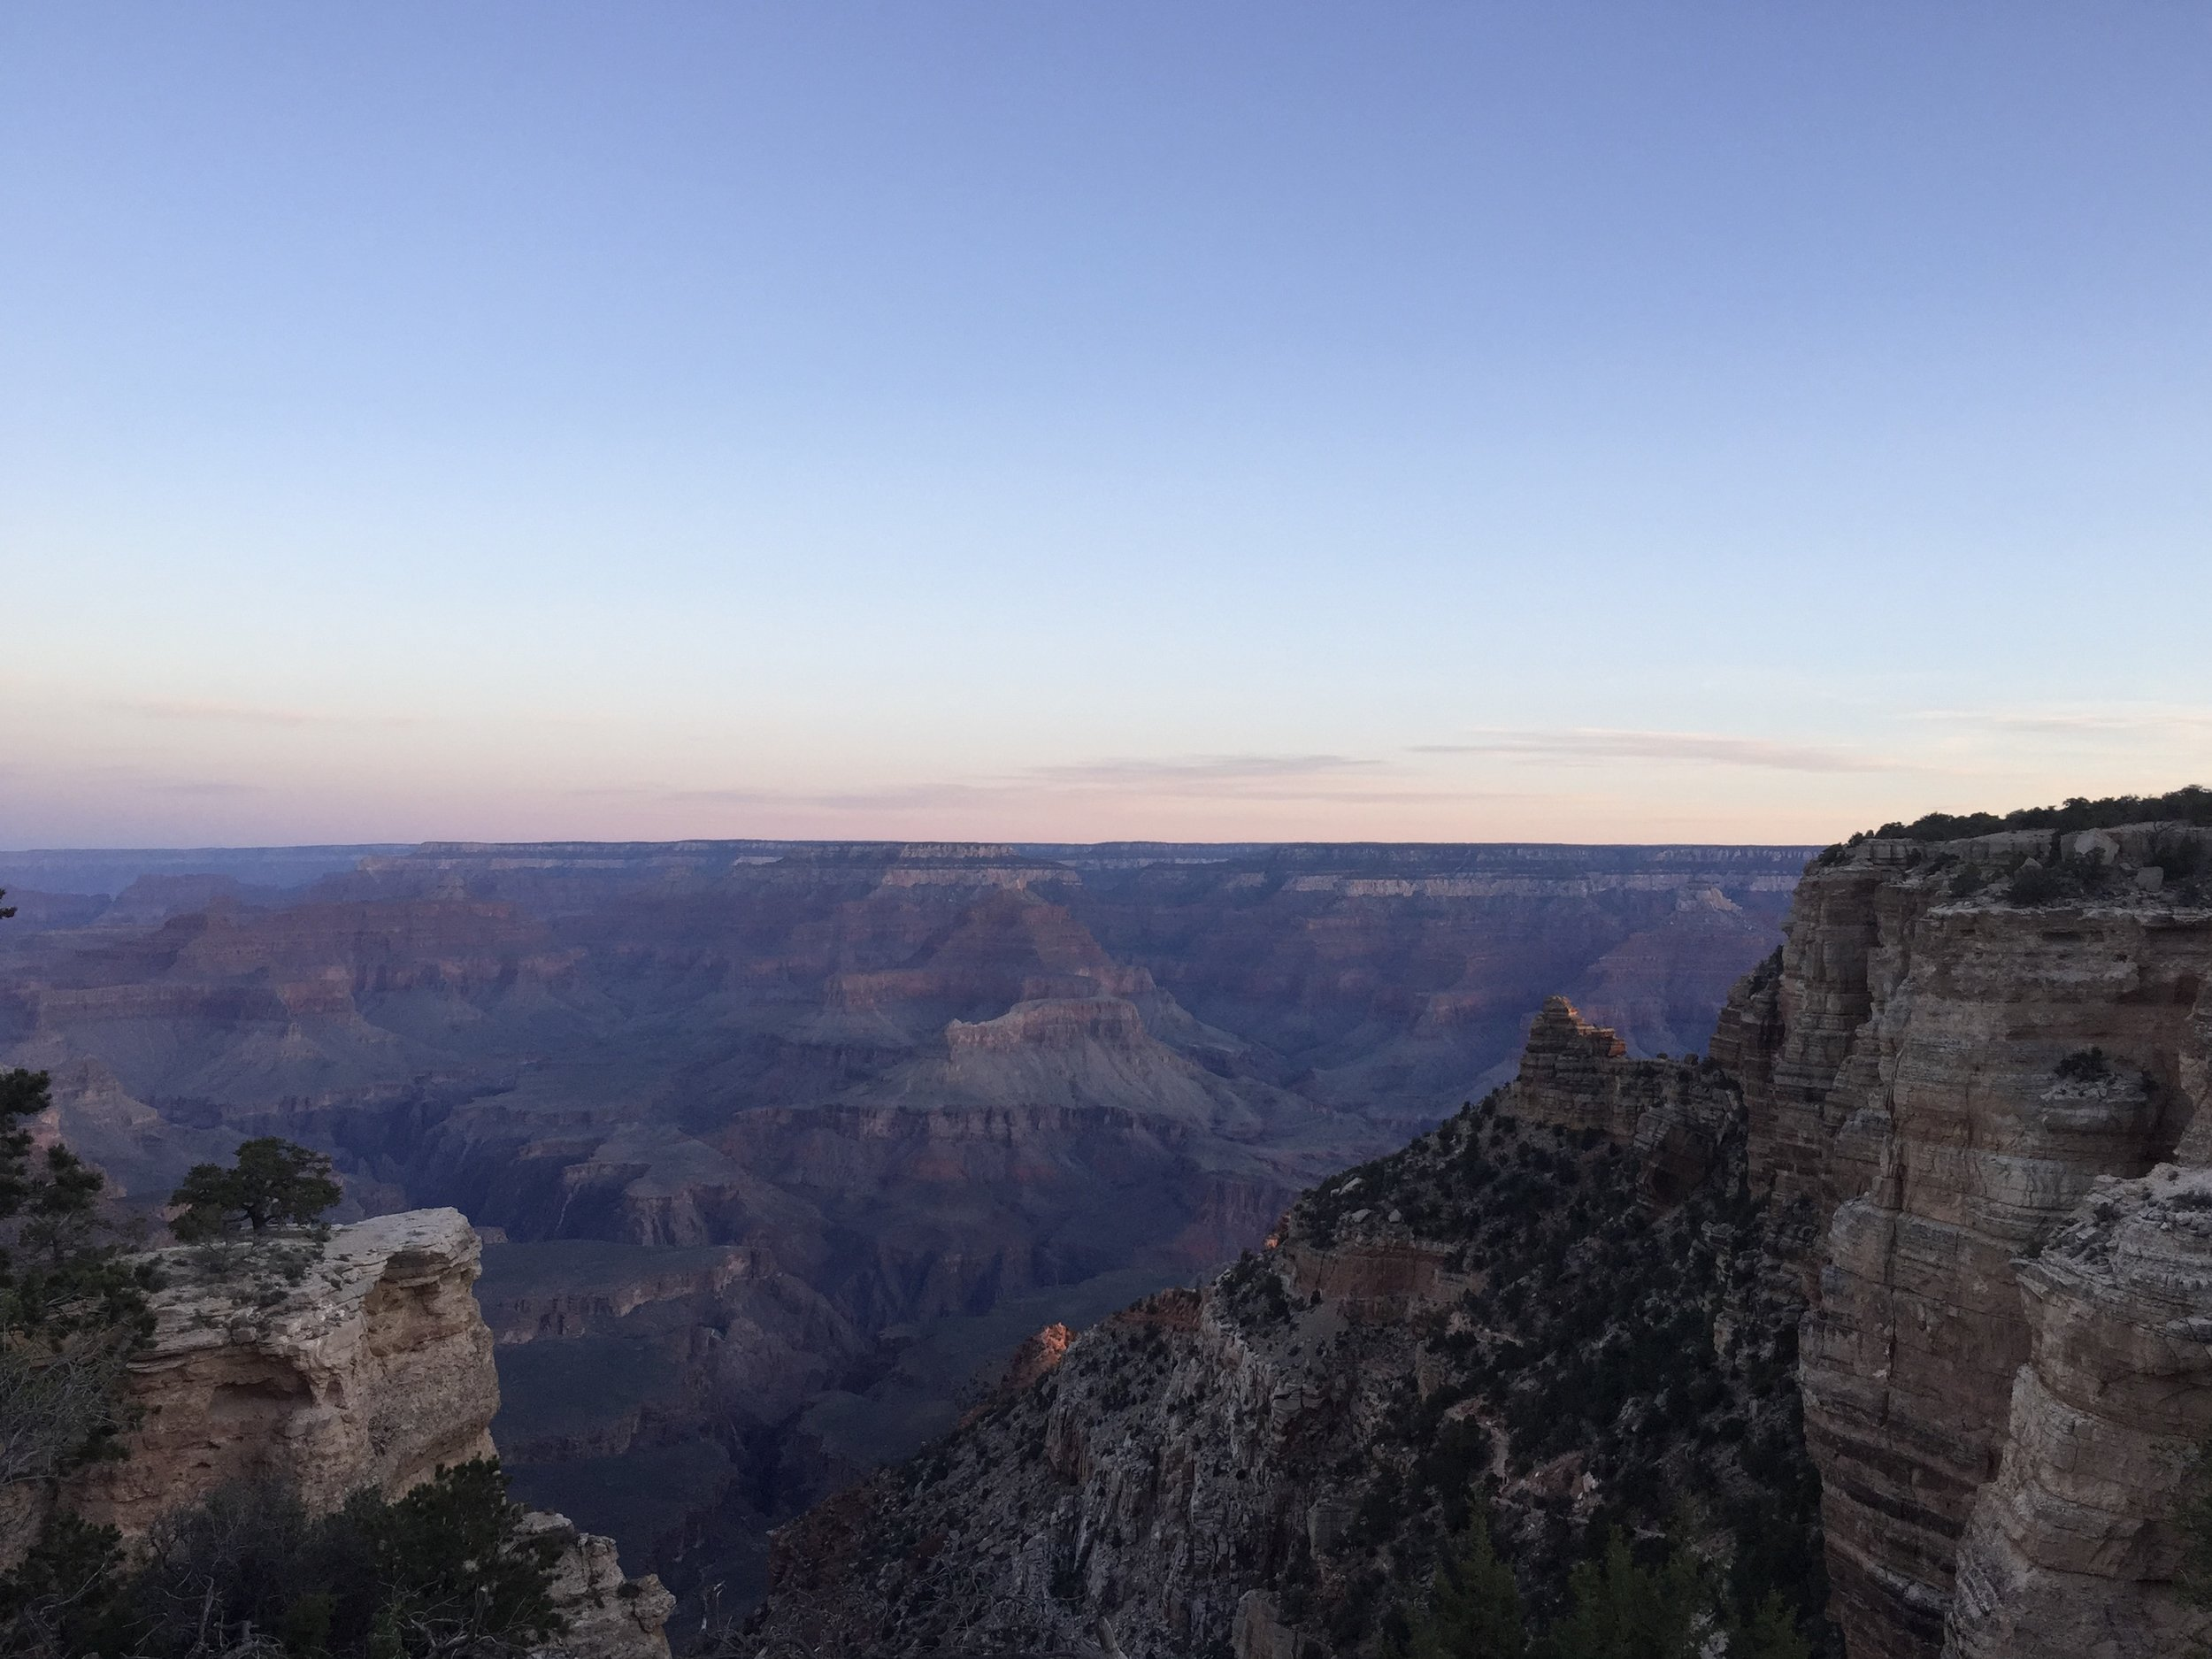 The benefits and beauty of arising early, a sunrise over the Grand Canyon. (March, 2015)